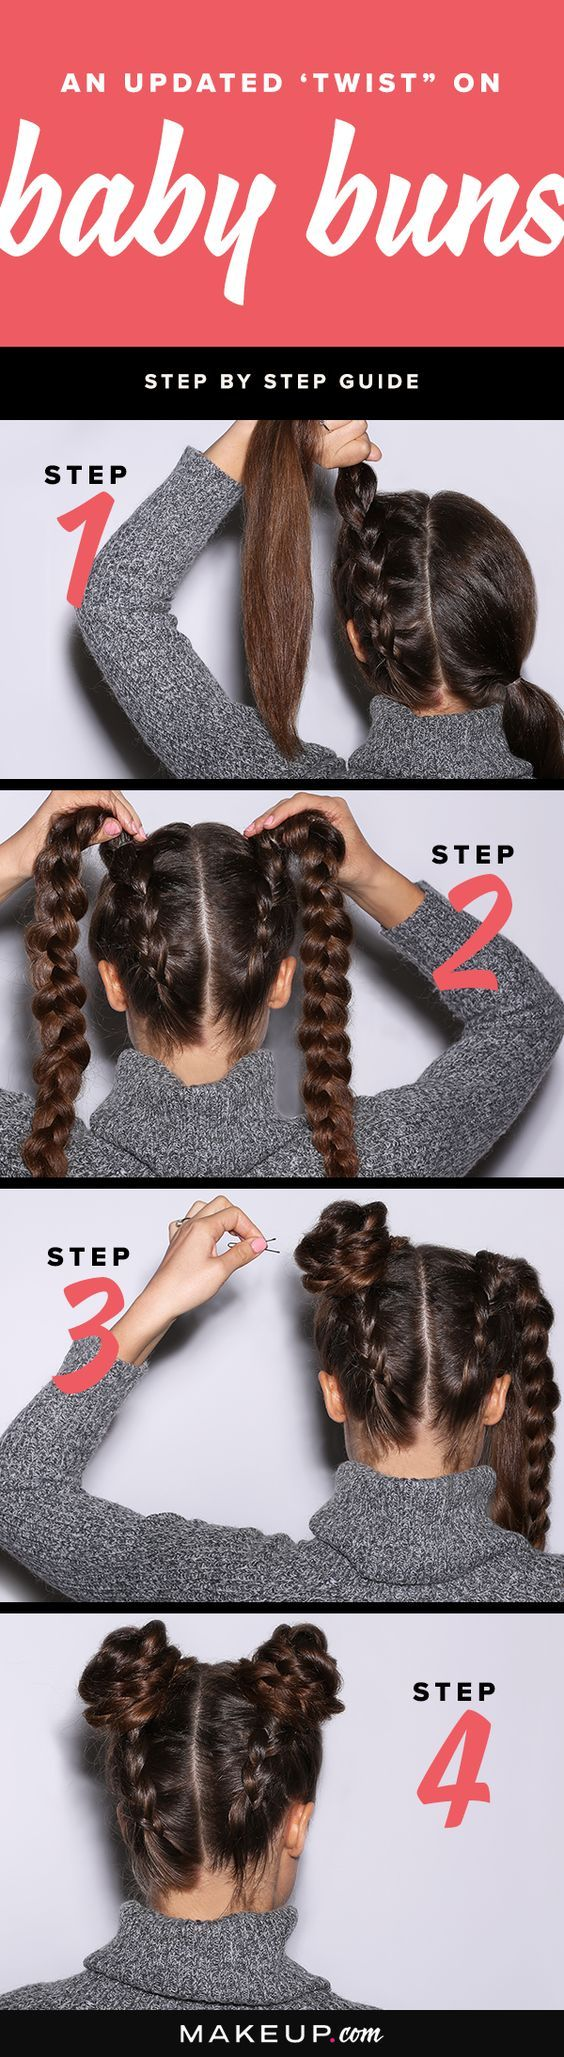 17 Easy DIY Tutorials For Glamorous and Cute Hairstyle. 21 Braids for Long Hair that You'll Love. Top 25 Messy Hair Bun Tutorials Perfect. affiliate link